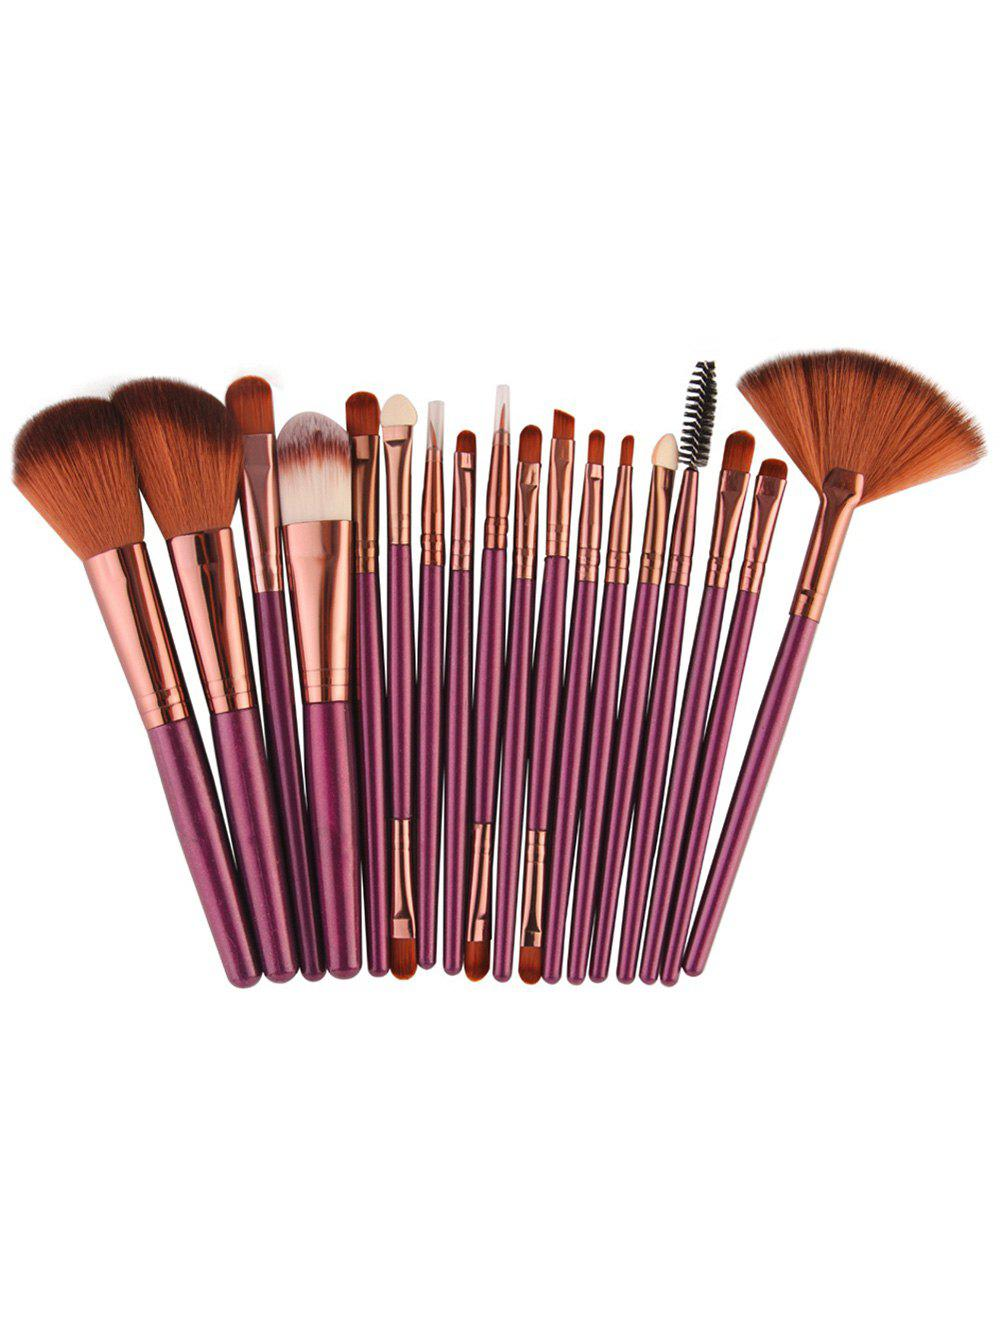 18Pcs Face Eye Makeup Brushes KitBEAUTY<br><br>Color: BROWNISH PURPLE; Category: Makeup Brushes Set; Brush Hair Material: Synthetic Hair; Features: Professional; Season: Fall,Spring,Summer,Winter; Weight: 0.1300kg; Package Contents: 18 x Brushes(Pcs);